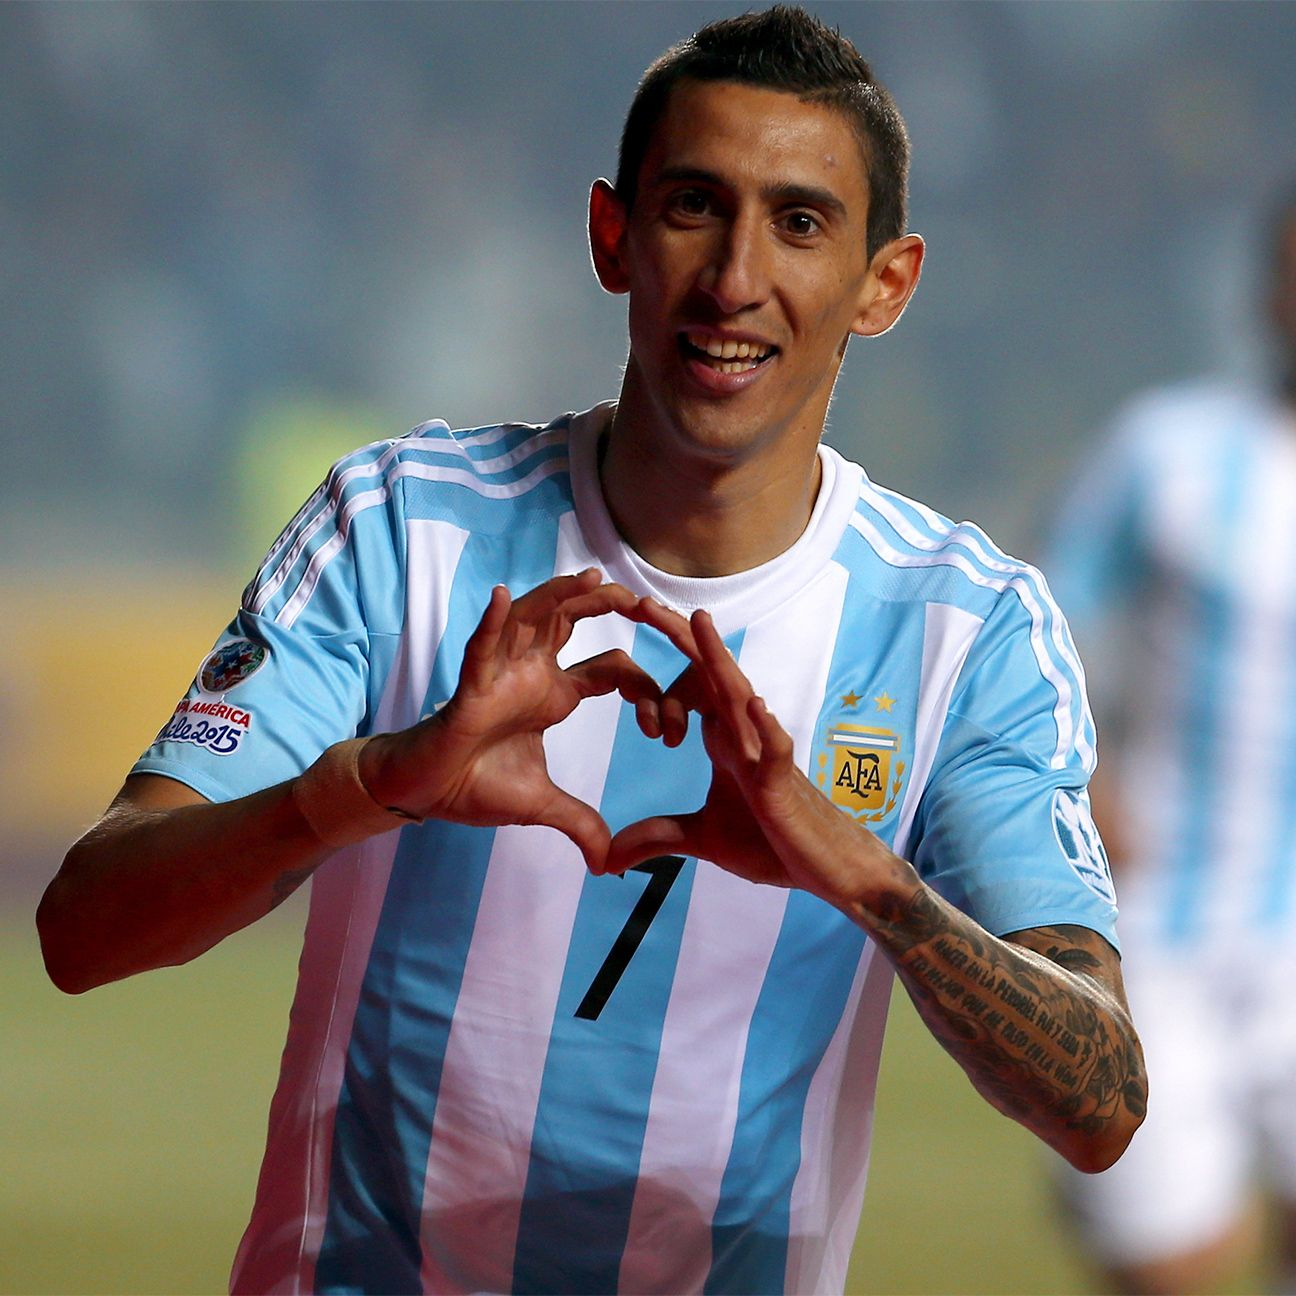 Andel di Maria helped lead Argentina's 6-1 romp over Paraguay in the Copa America semifinals with a second half brace.